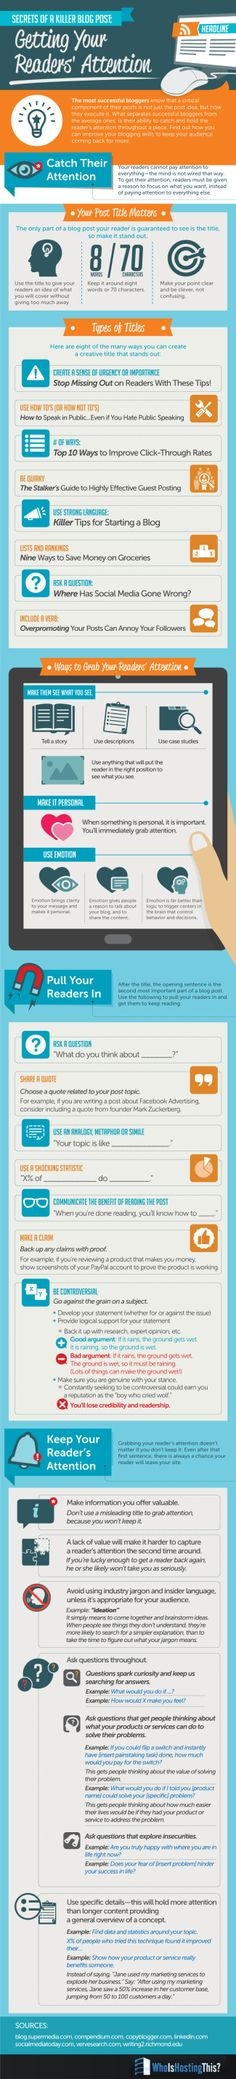 Secrets of a killer blog post (Infographic) | Repinned by Melissa K. Nicholson, LMSW http://www.adoptioncounselinggr.com